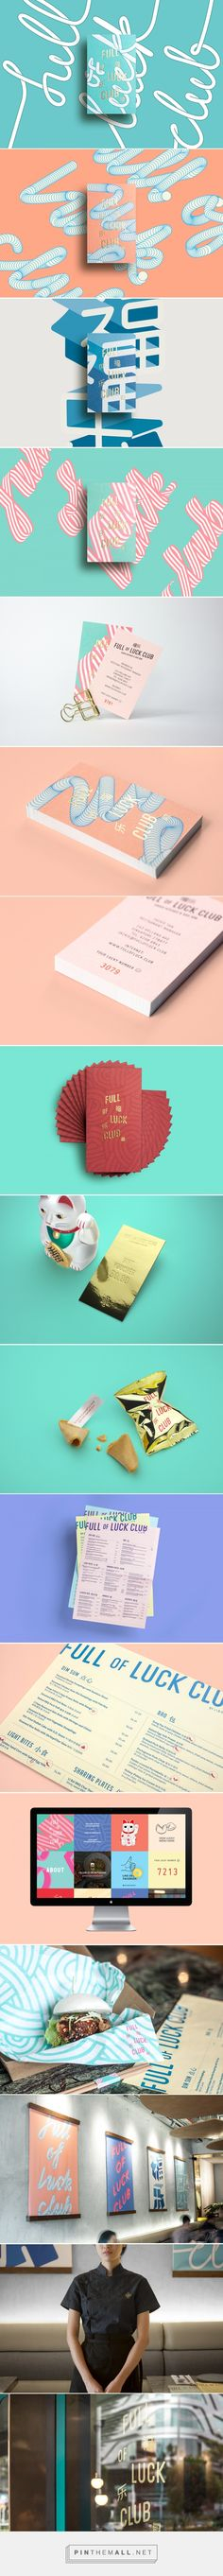 Full of Luck Club on Behance - created via https://pinthemall.net